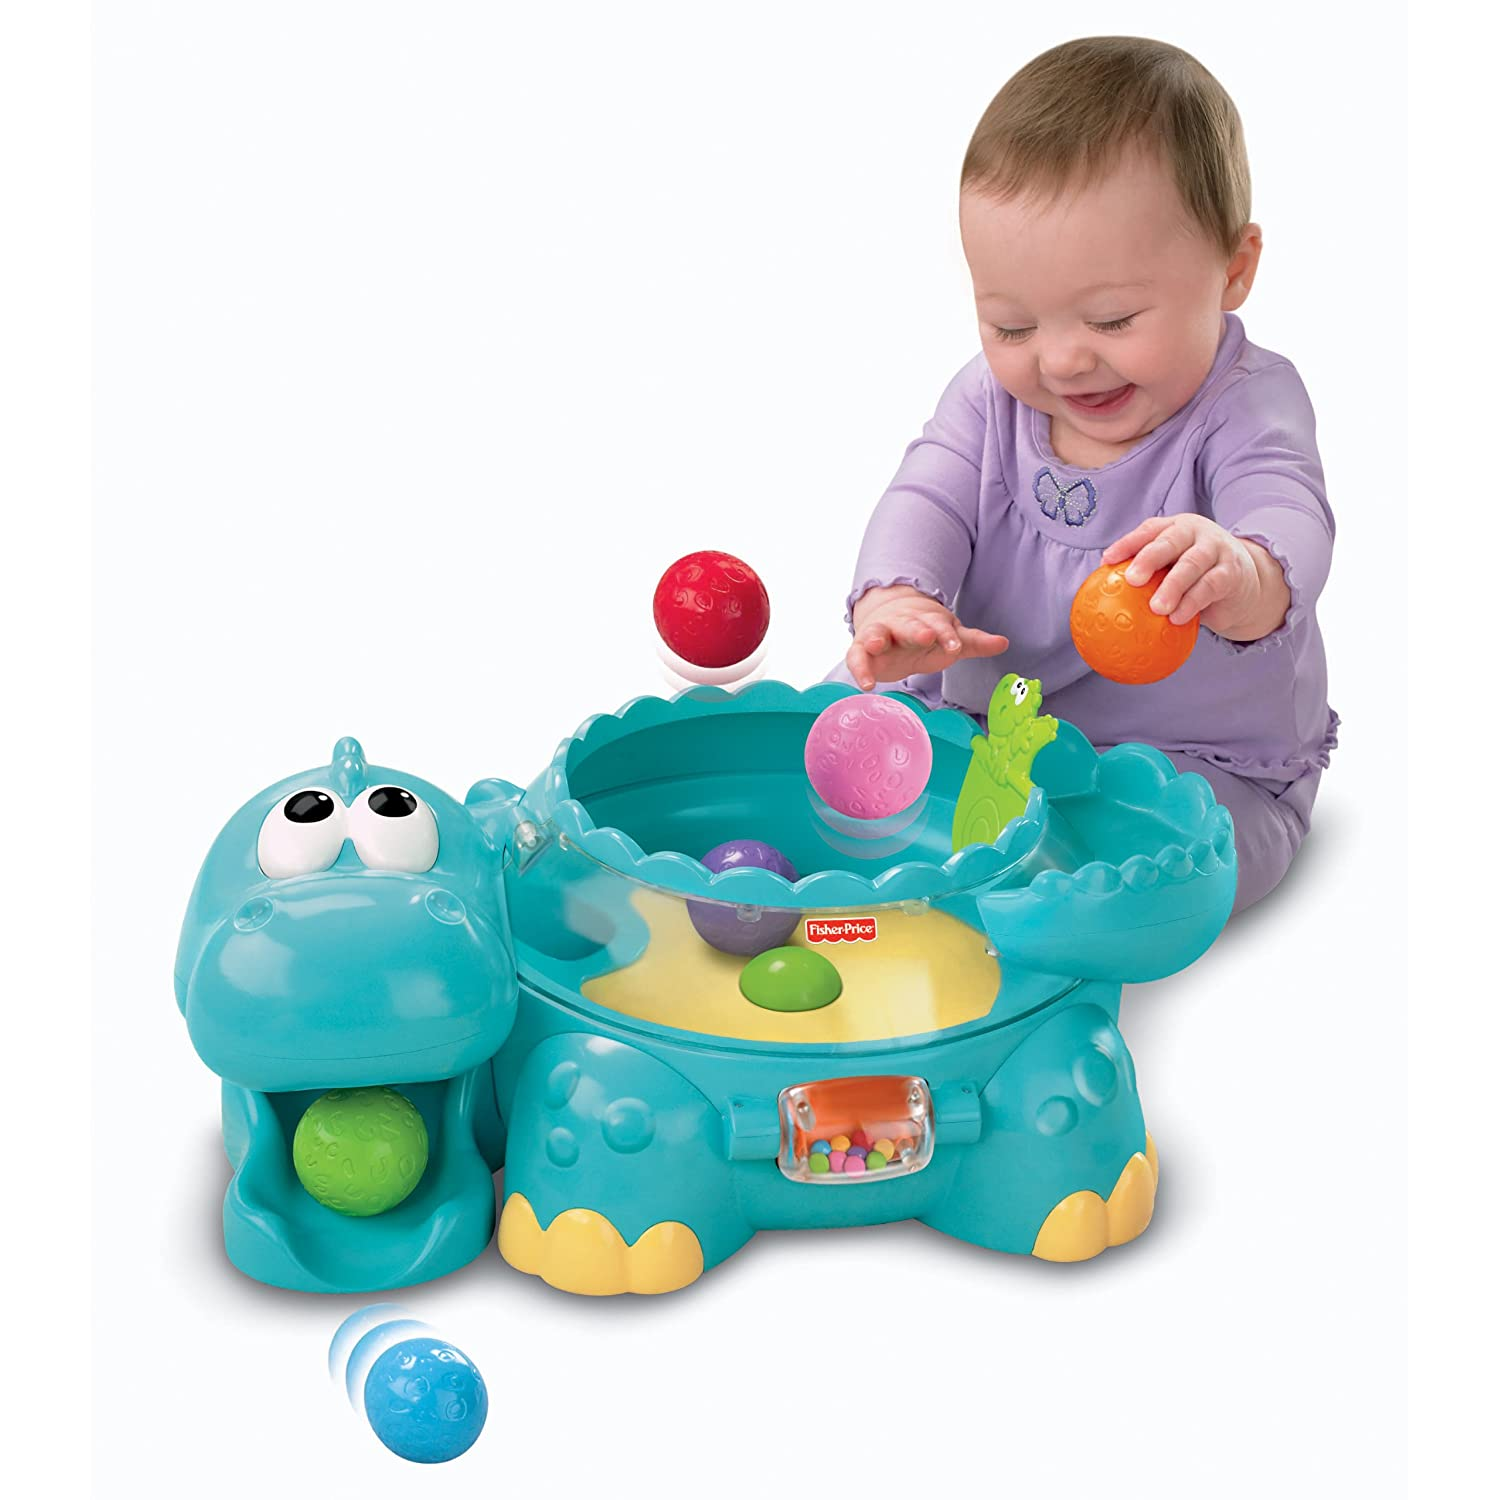 Baby Boy Toys Walmart : Fisher price poppity pop musical dino best toy for babies